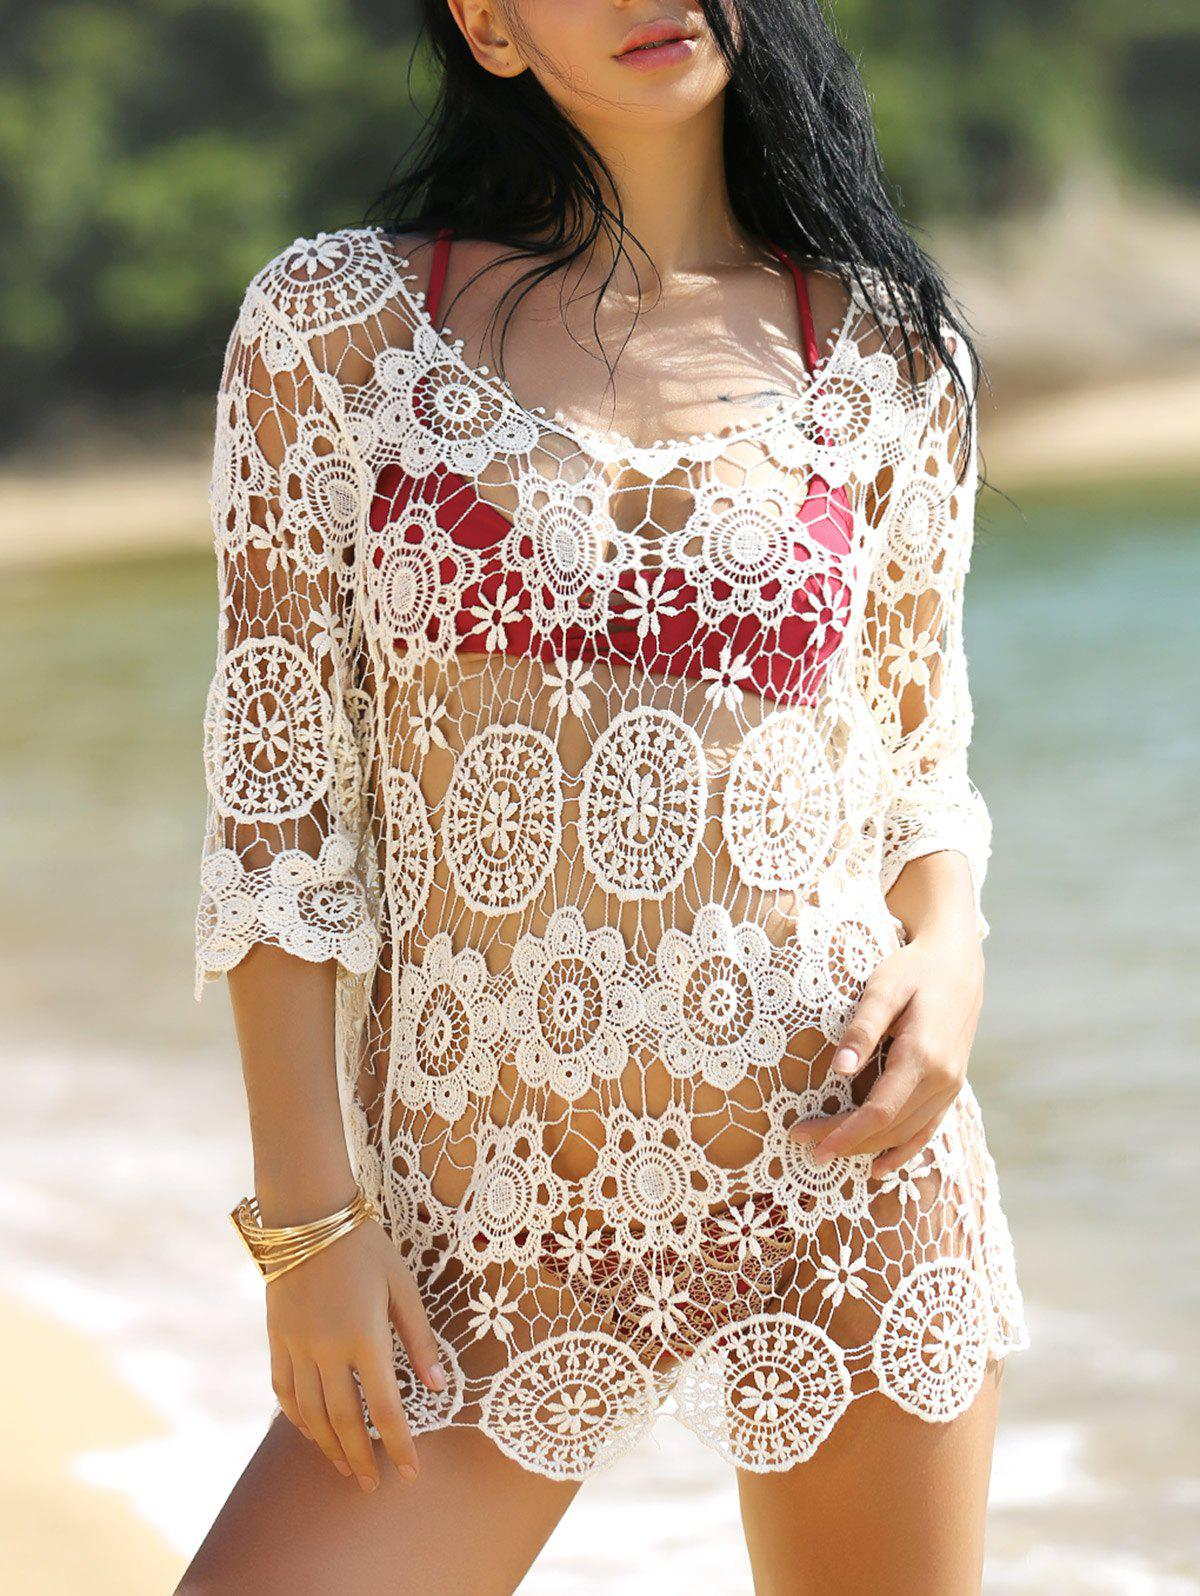 Femmes Élégant  's manches 3/4 évider Crocheting Cover-Up - Blanc ONE SIZE(FIT SIZE XS TO M)